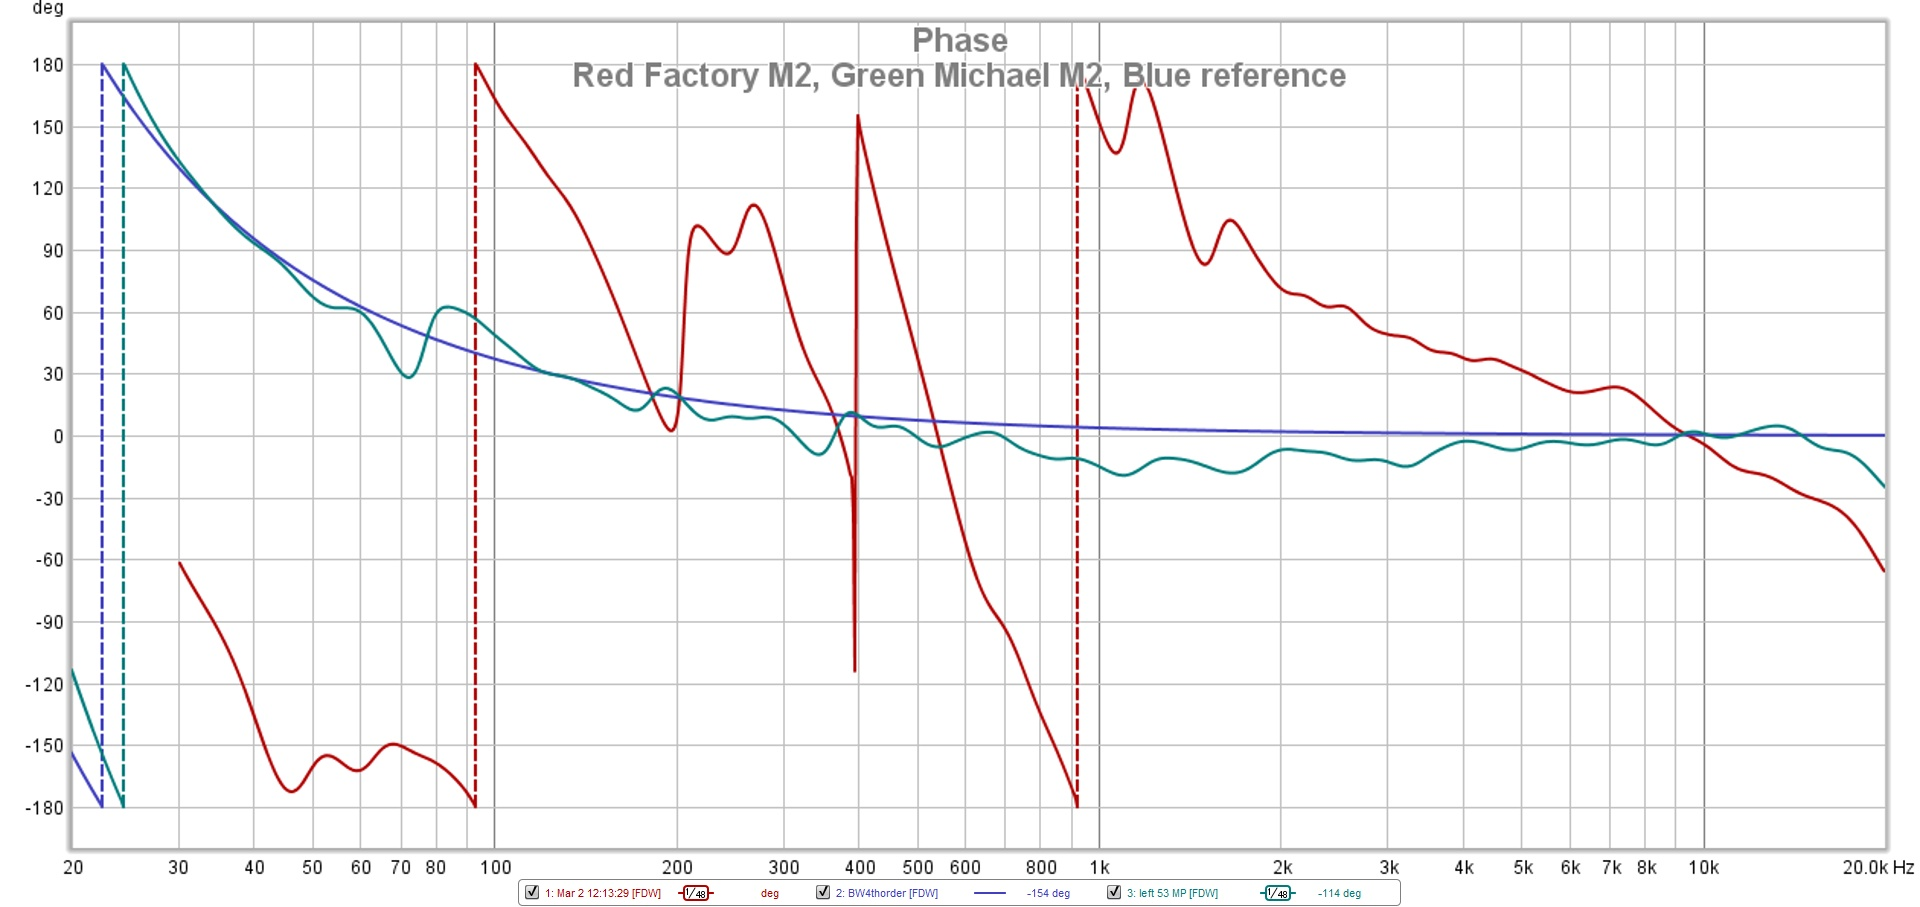 Red Factory M2 Green Michael M2 Blue reference phase.jpg